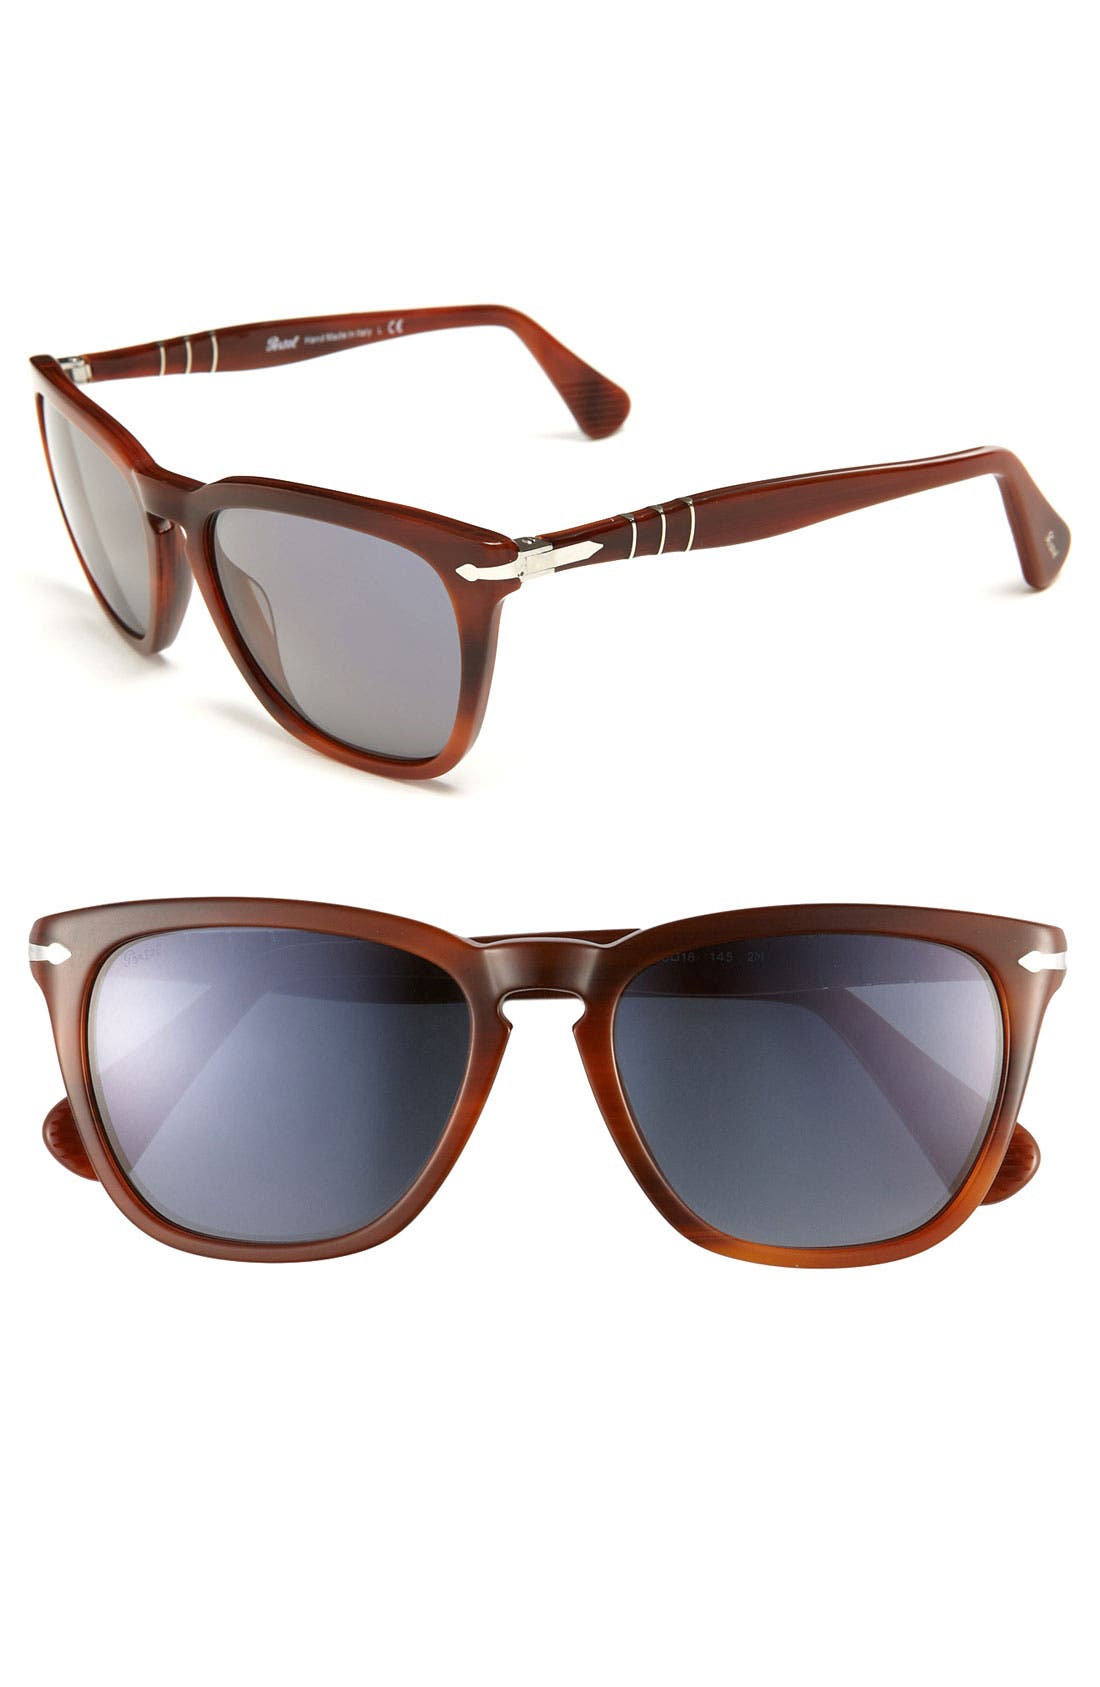 Alternate Image 1 Selected - Persol 'Capri' 55mm Sunglasses